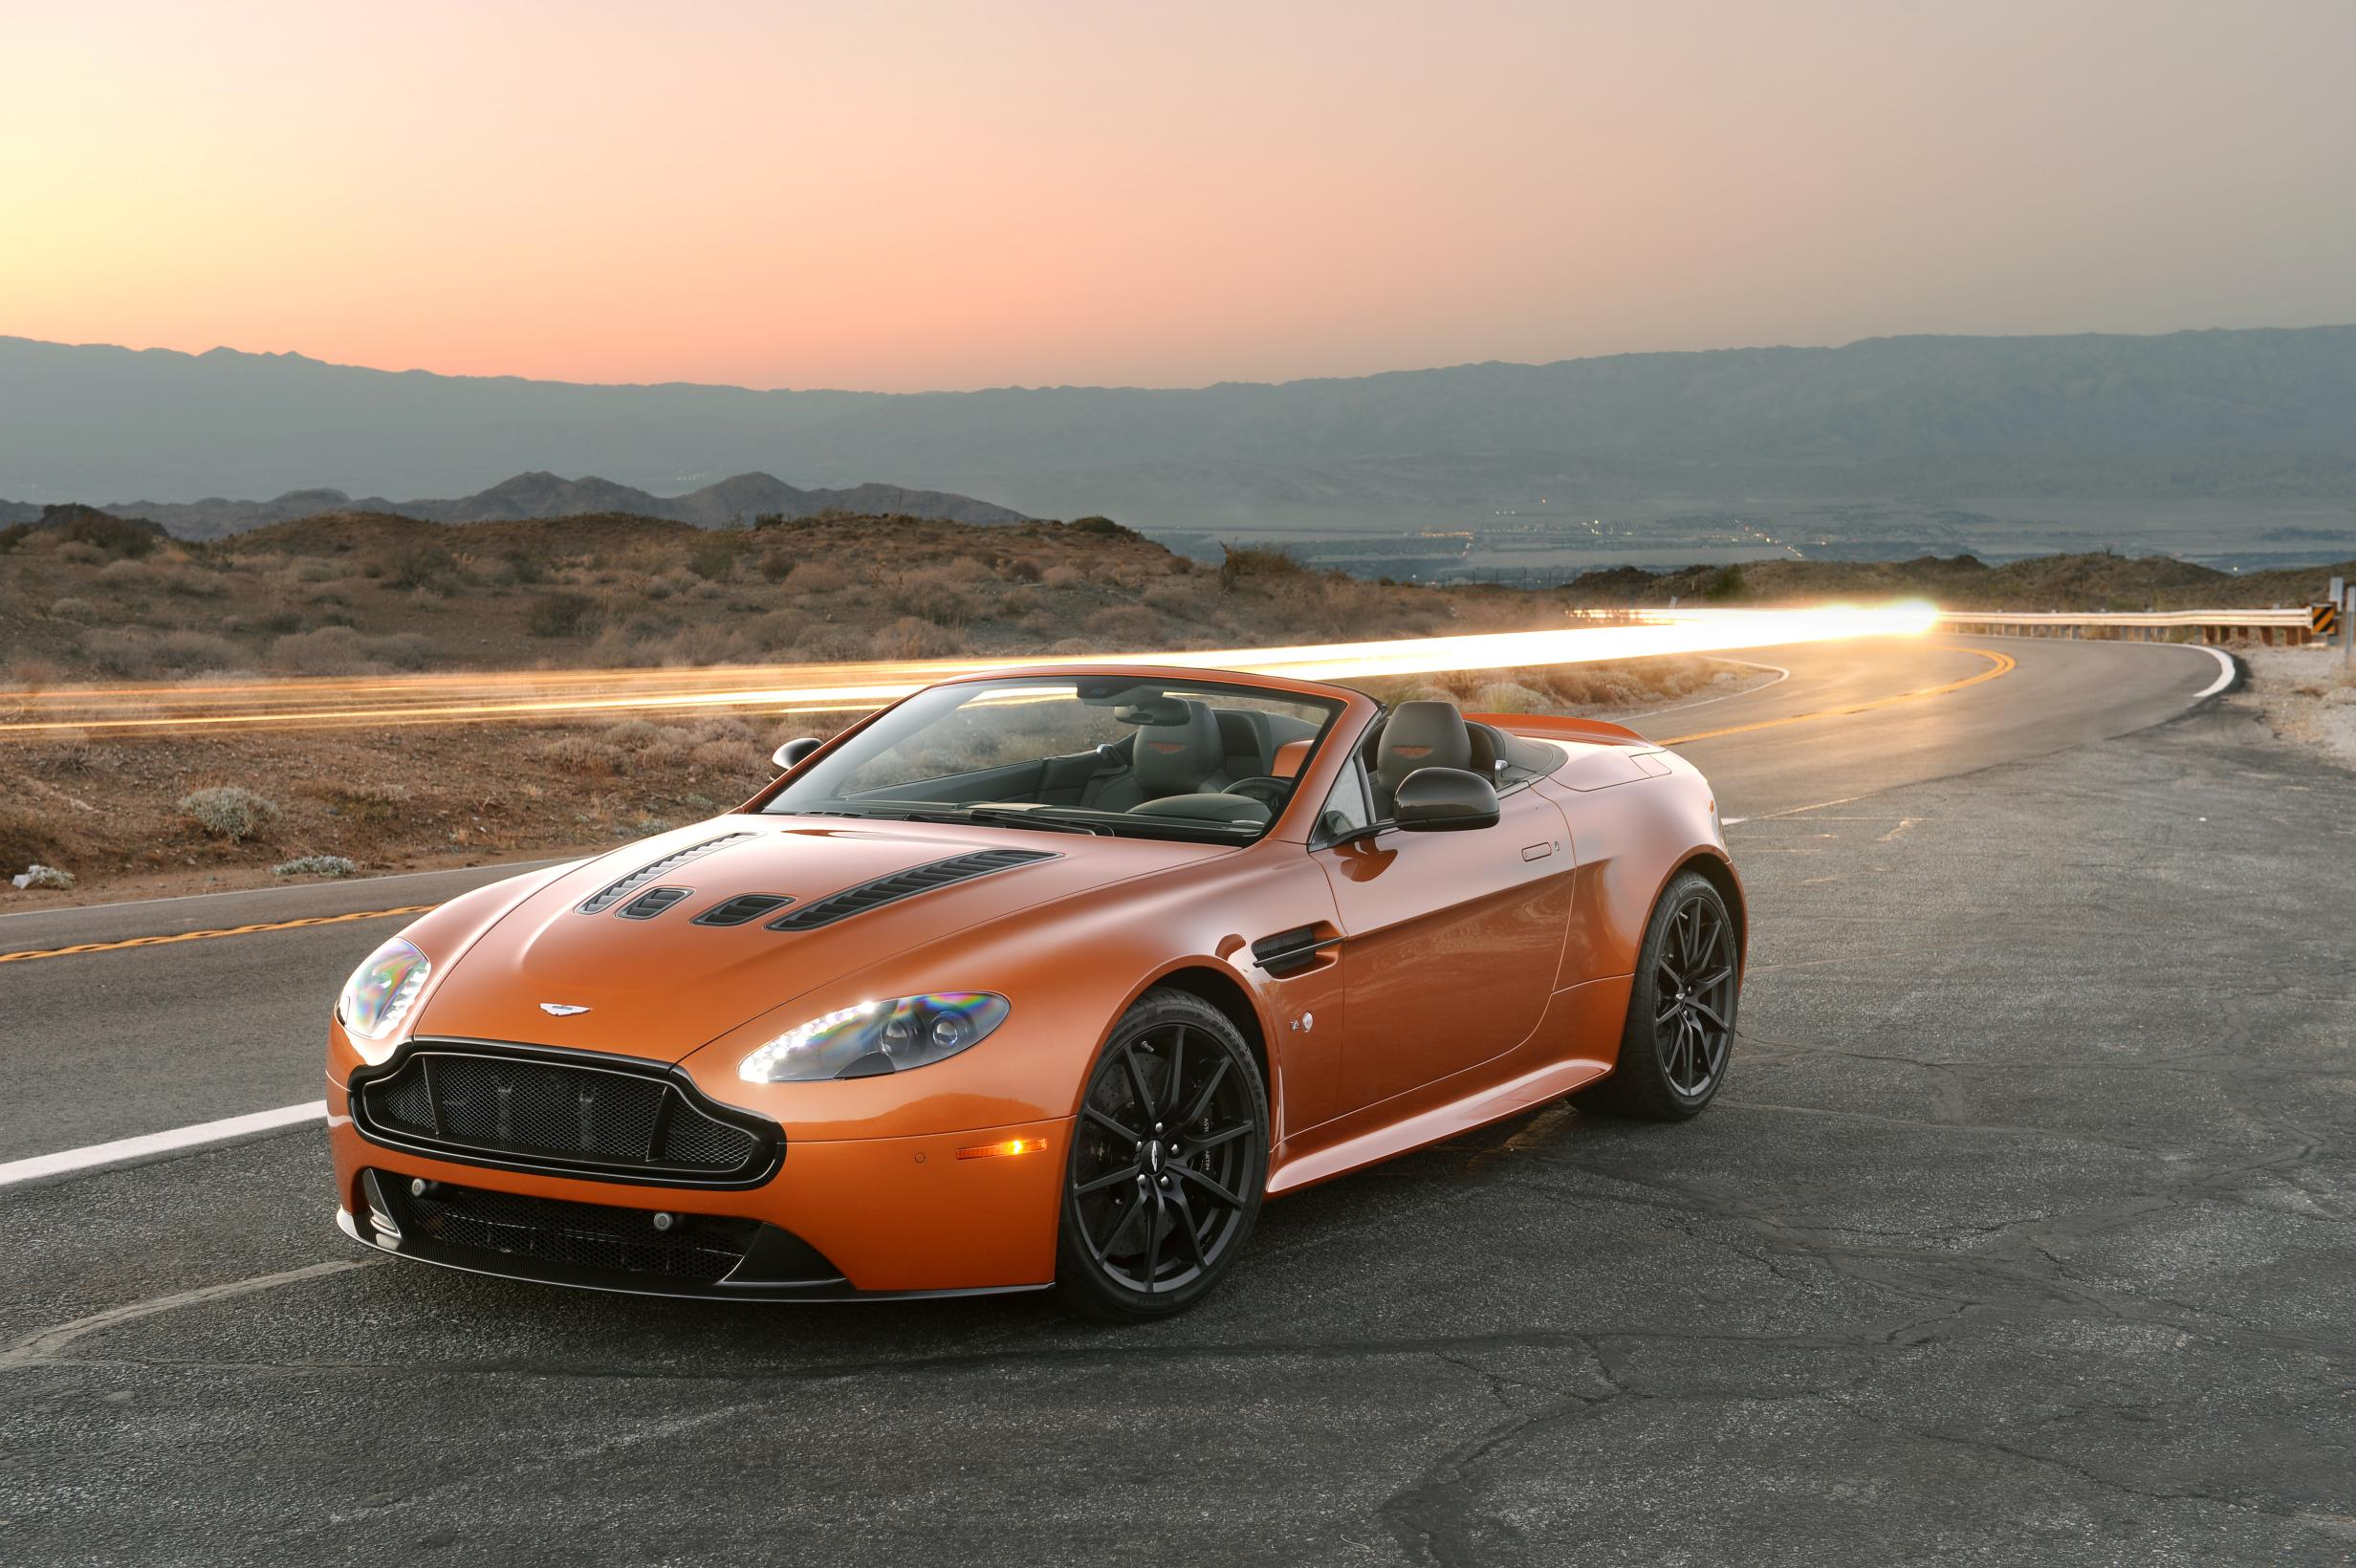 ASTON MARTIN ALLY FINANCIAL OFFER A NEW WAY TO LEASE MyAutoWorldcom - Lease aston martin vantage